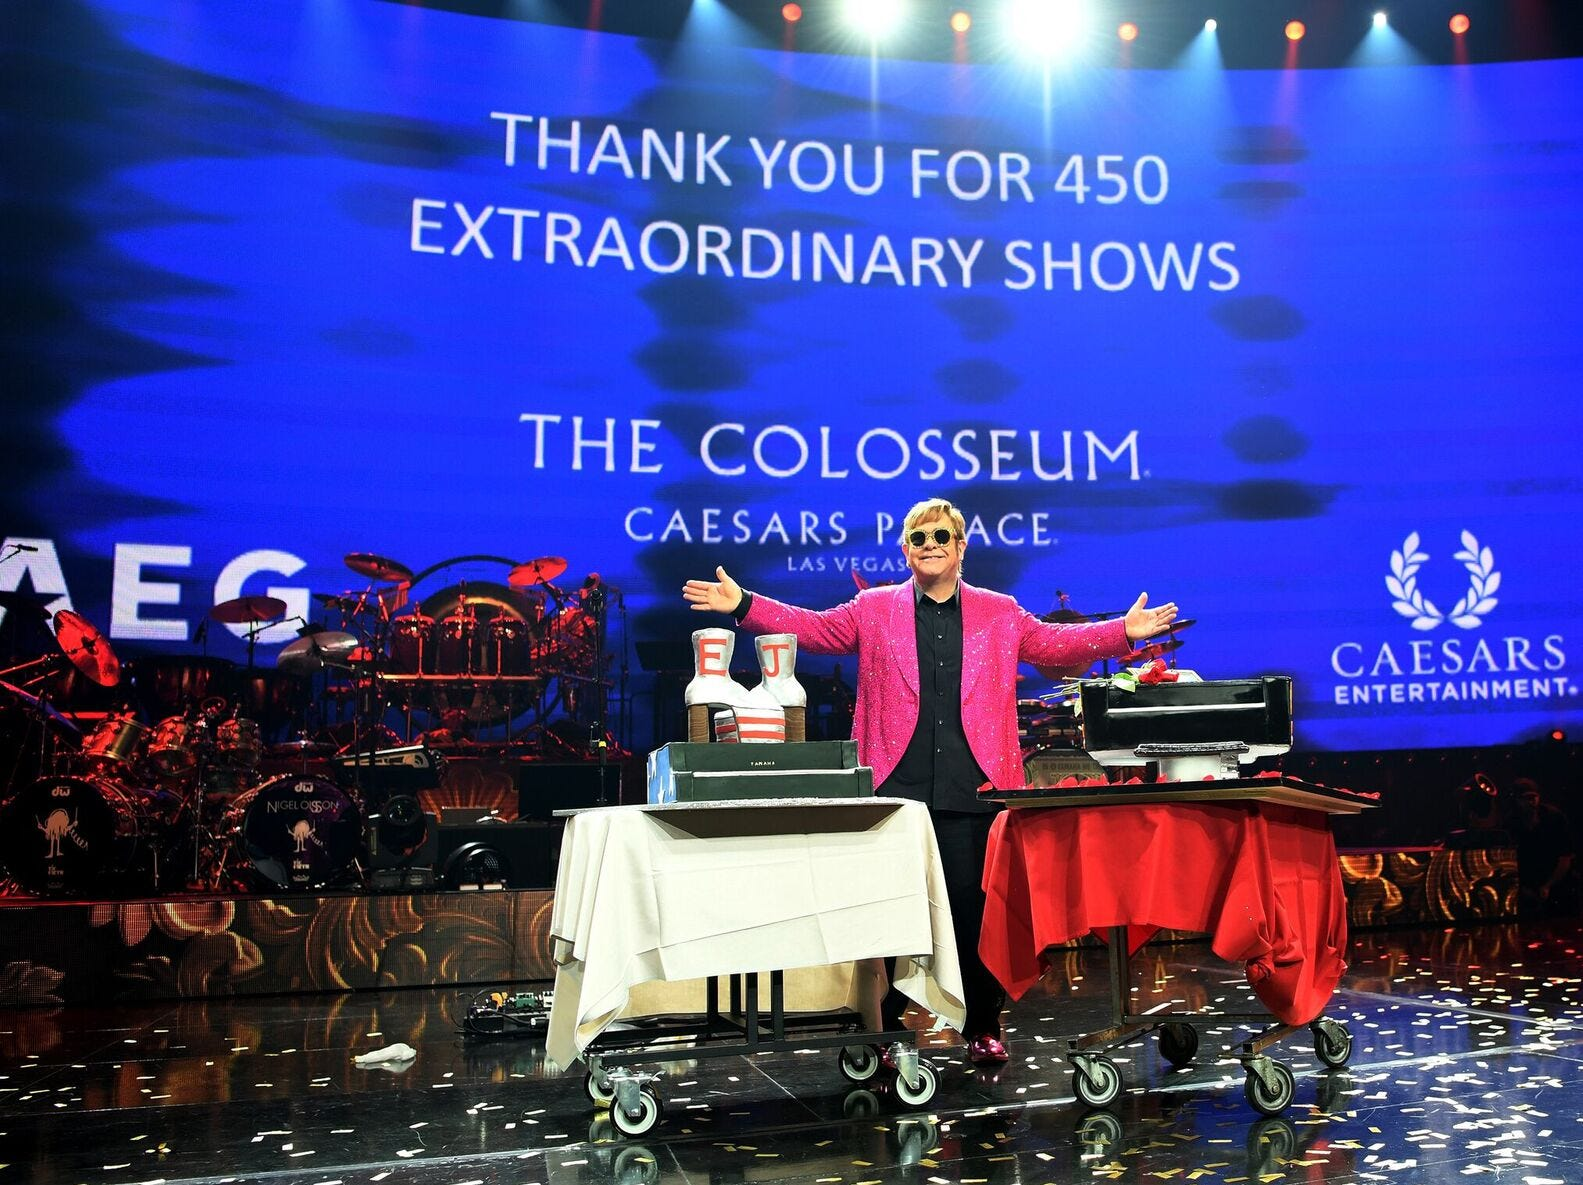 Elton John ended a long running residency at The Colosseum at Caesars Palace in 2018. He performed 450 shows.